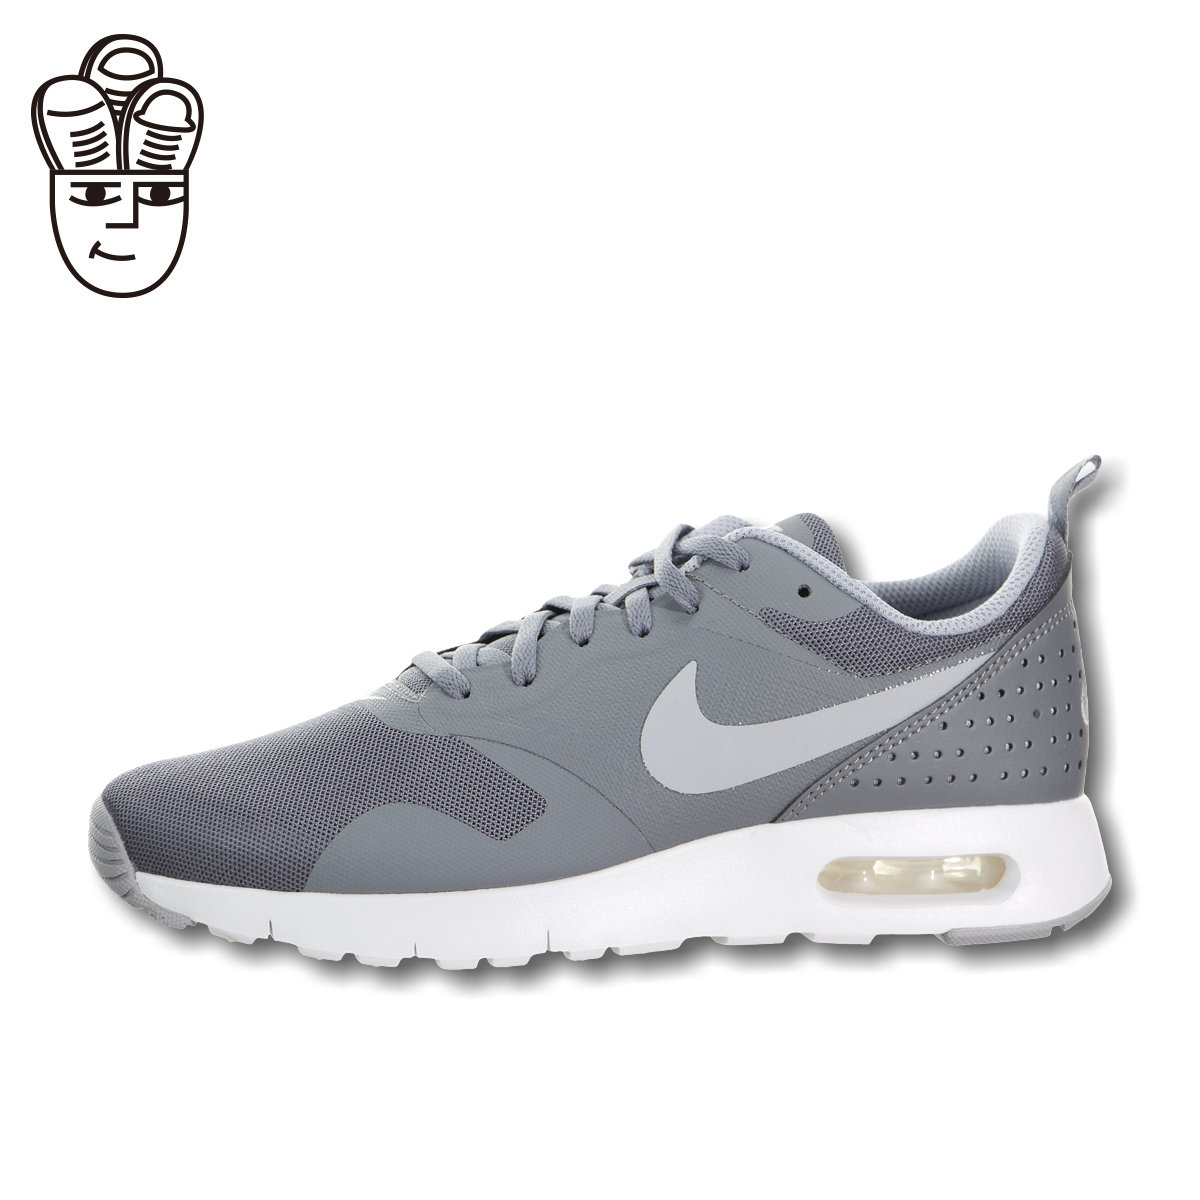 new styles 84acf 9afae Buy Nike air max tavas (kids) casual shoes nike running shoes for men and  women in Cheap Price on m.alibaba.com